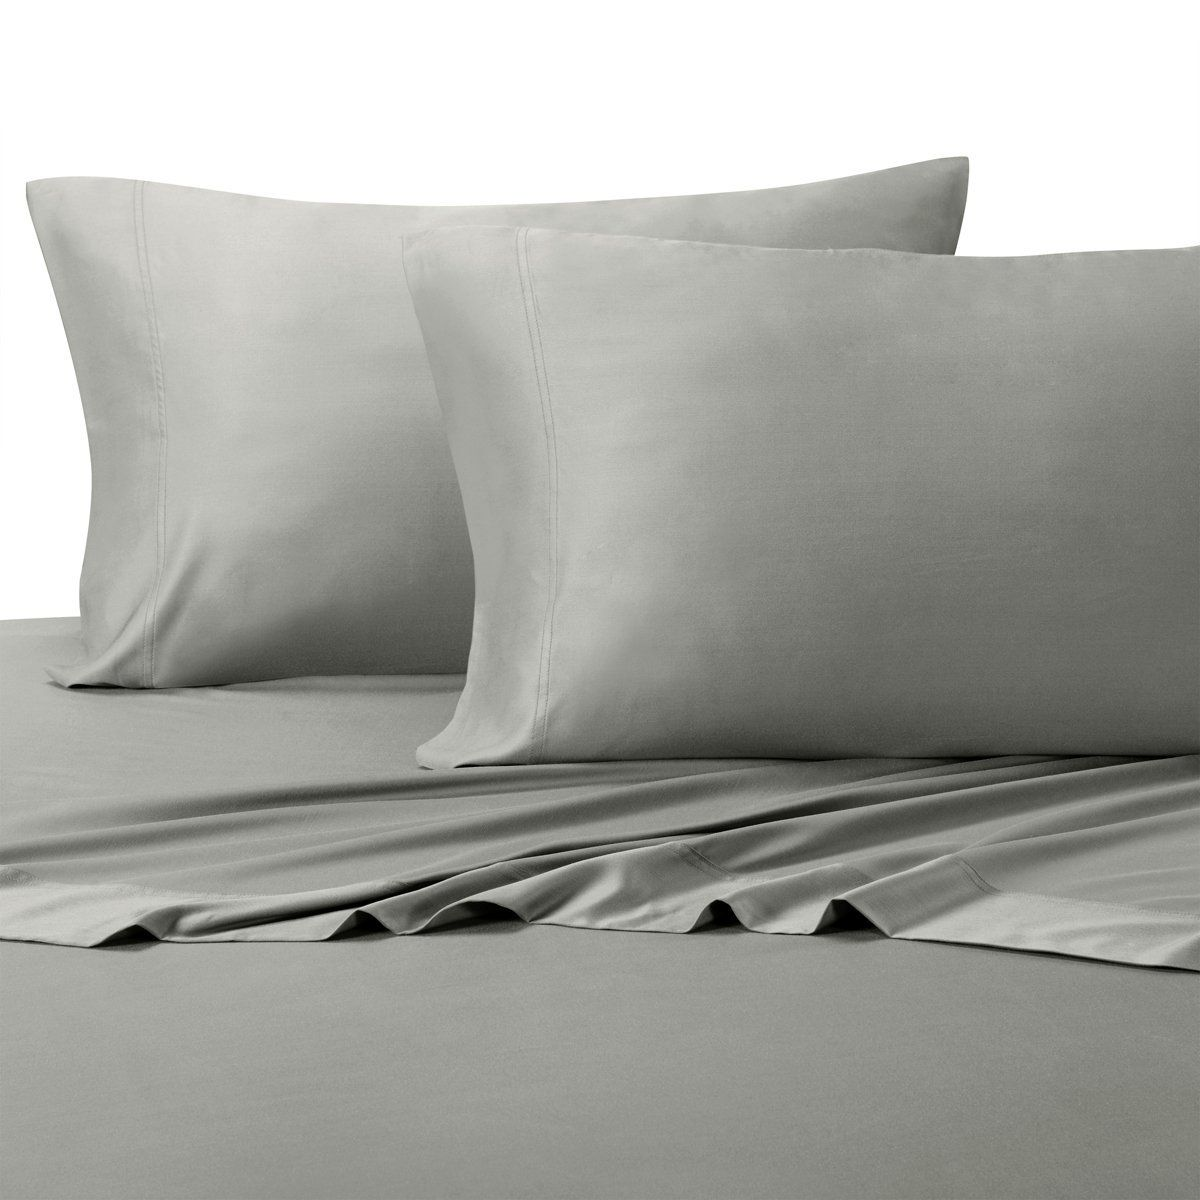 Top 10 Best Bamboo Sheets Reviews A Step by Step Buyer